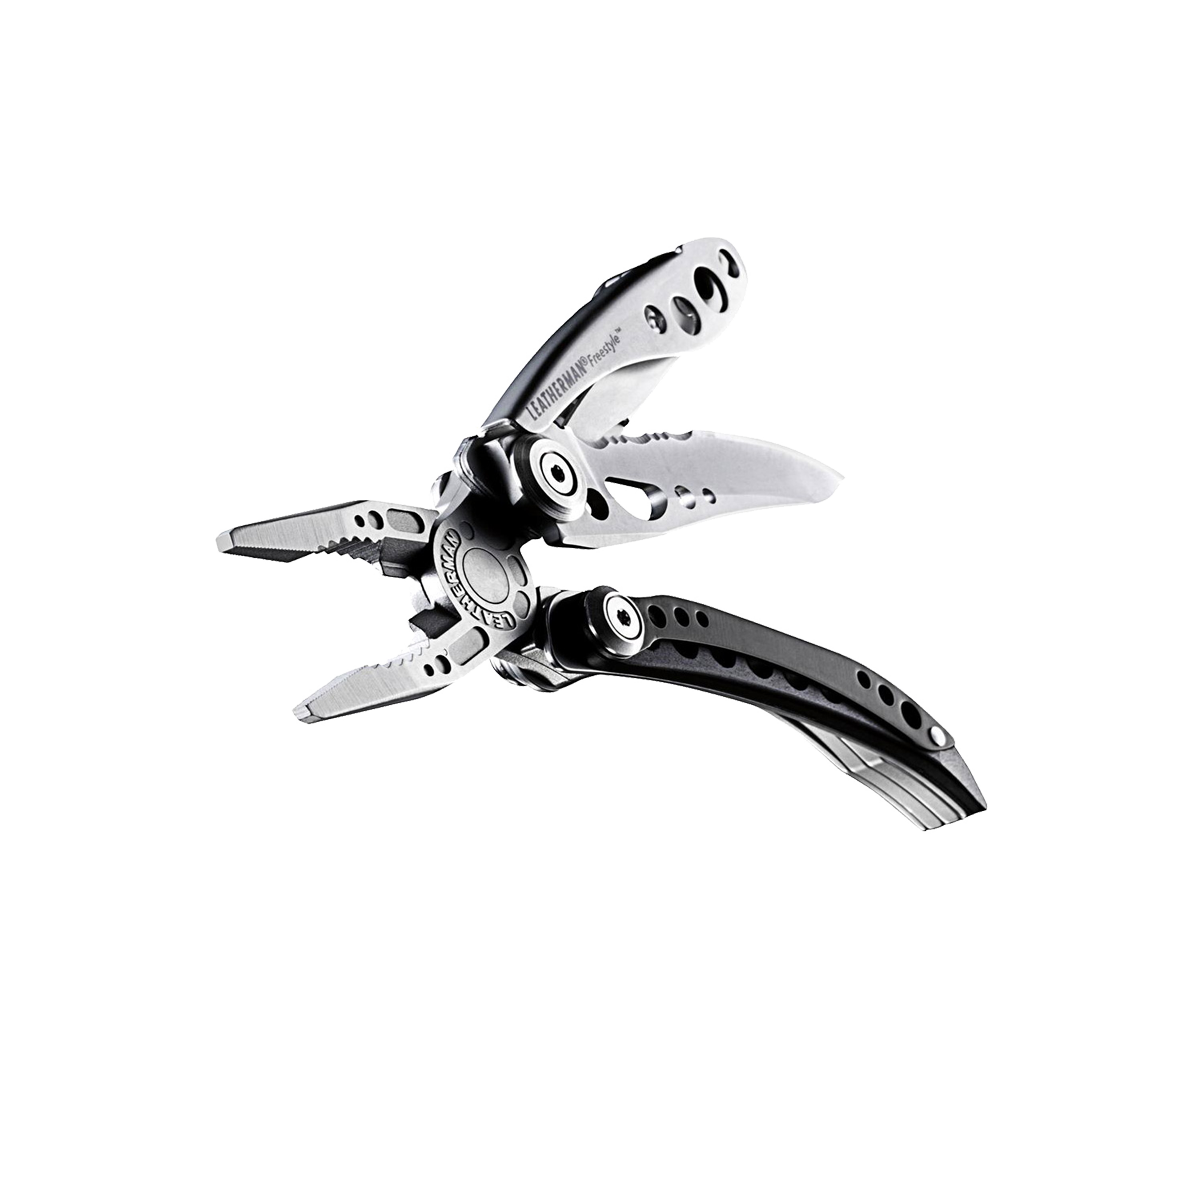 Leatherman freestyle multi-tool, open view, black and stainless steel, 5 tools